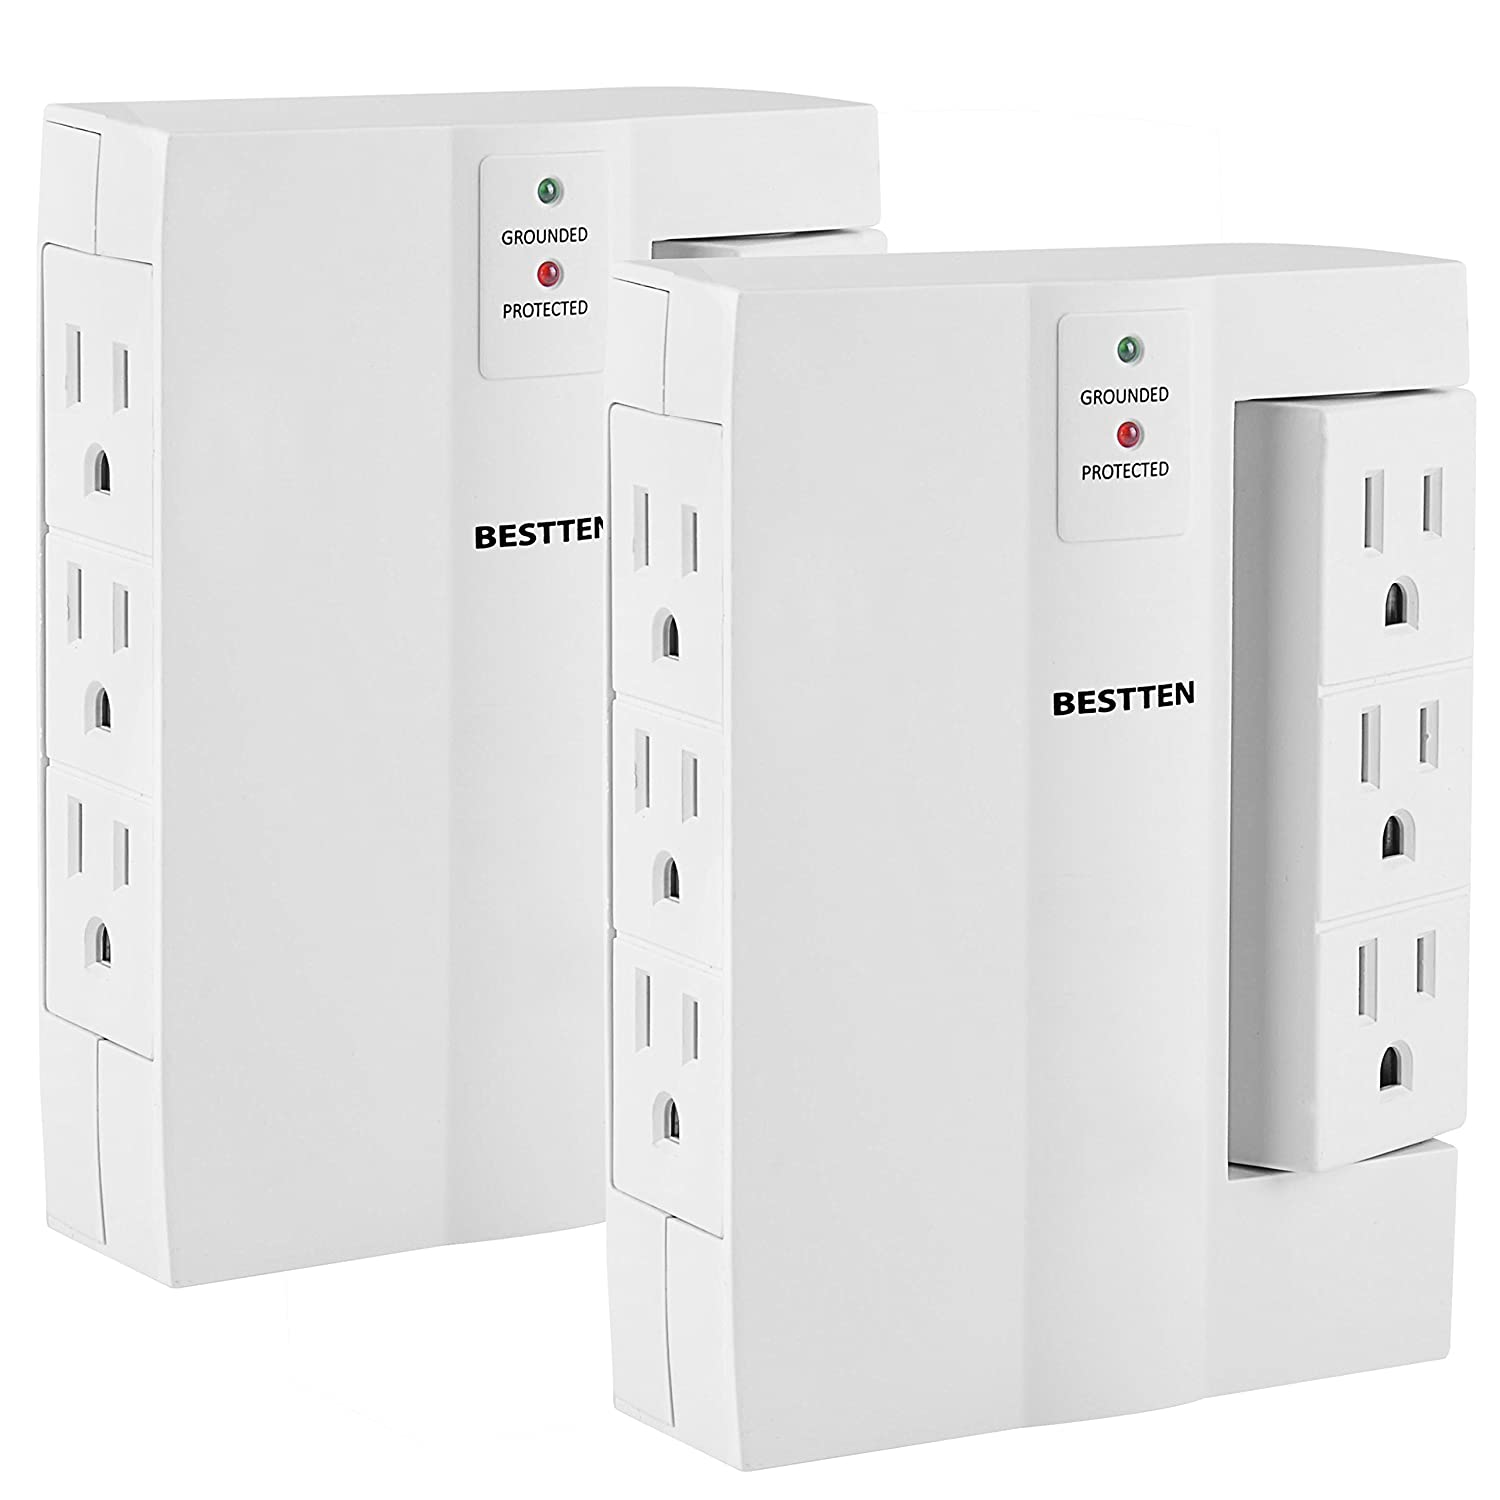 Bestten 4 Outlet Power Station 1800 Joules Surge Protector with 4 USB Charging Ports (2.4A/Port, Total 4.2A), 6ft Heavy Duty Cord, 1875W/15A, Perfect for Home and Office Use, ETL Certified USH-4U4A-6B